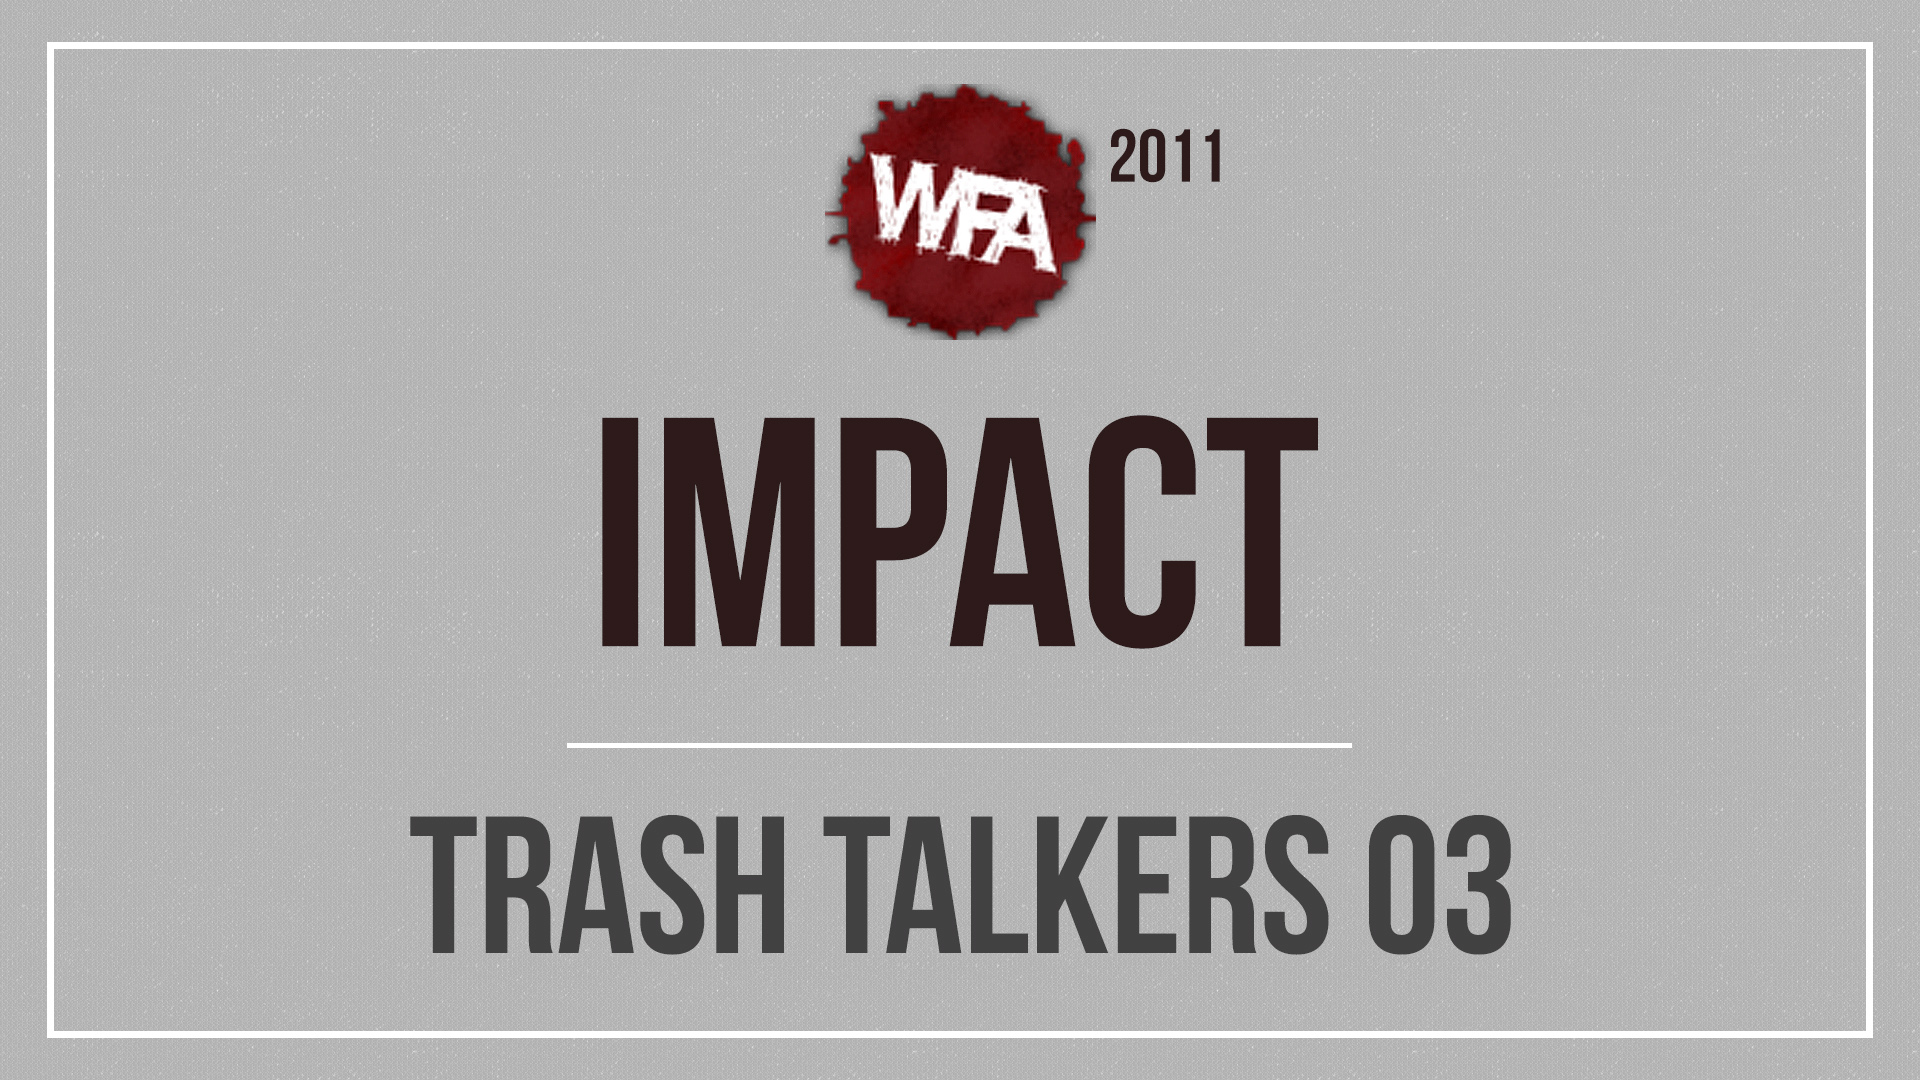 WFA 2011 Trash Talkers 03